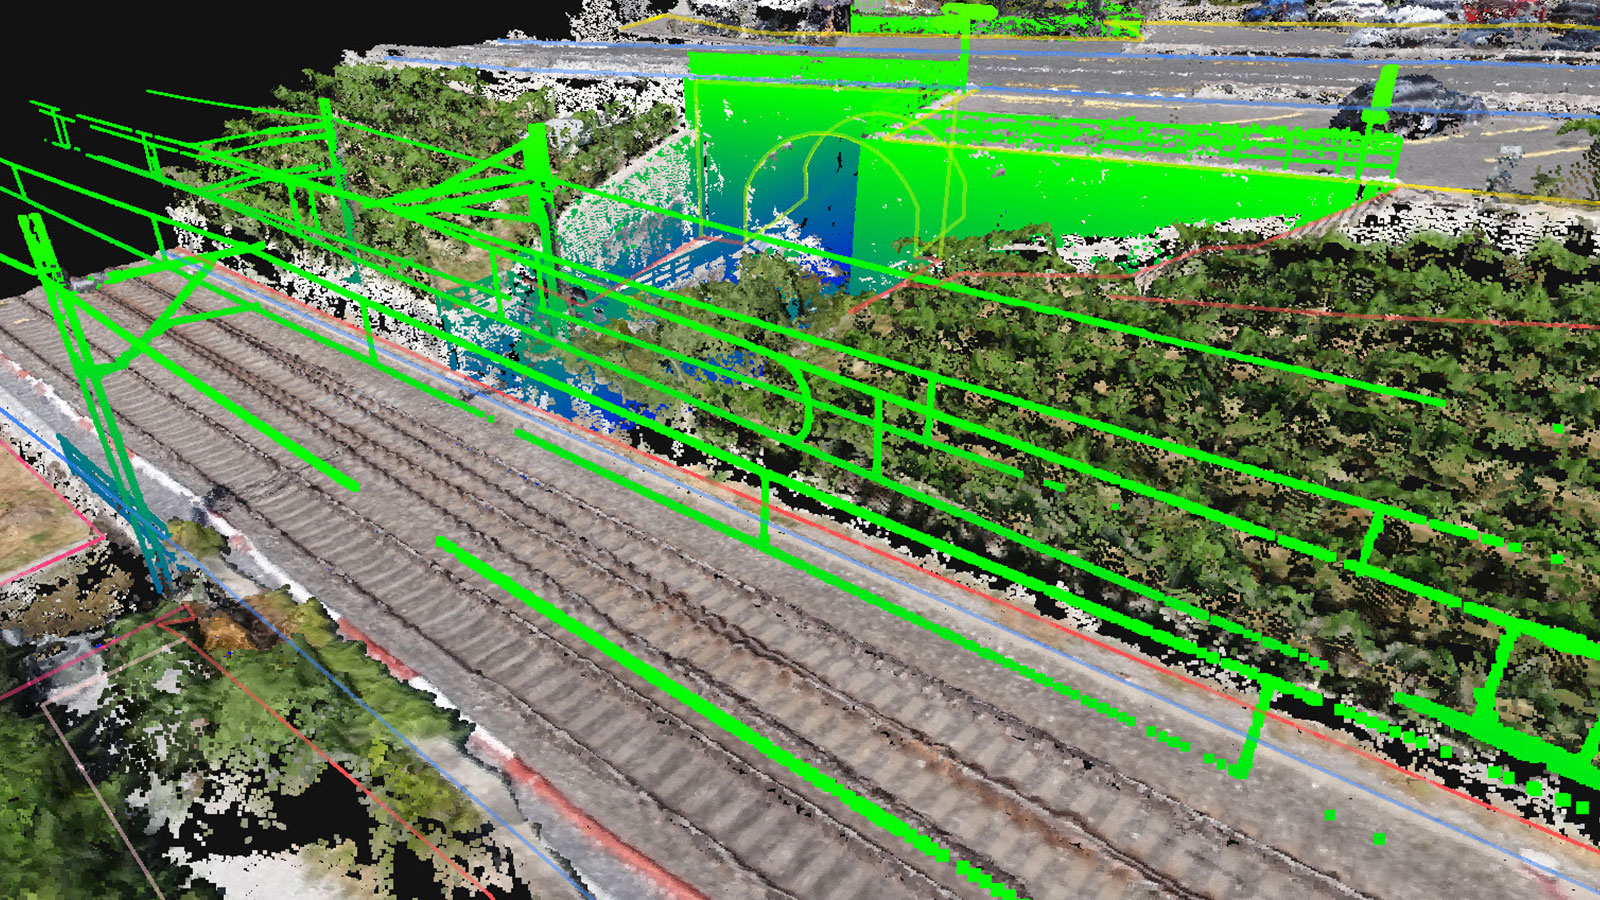 Point cloud of a railway track in Switzerland